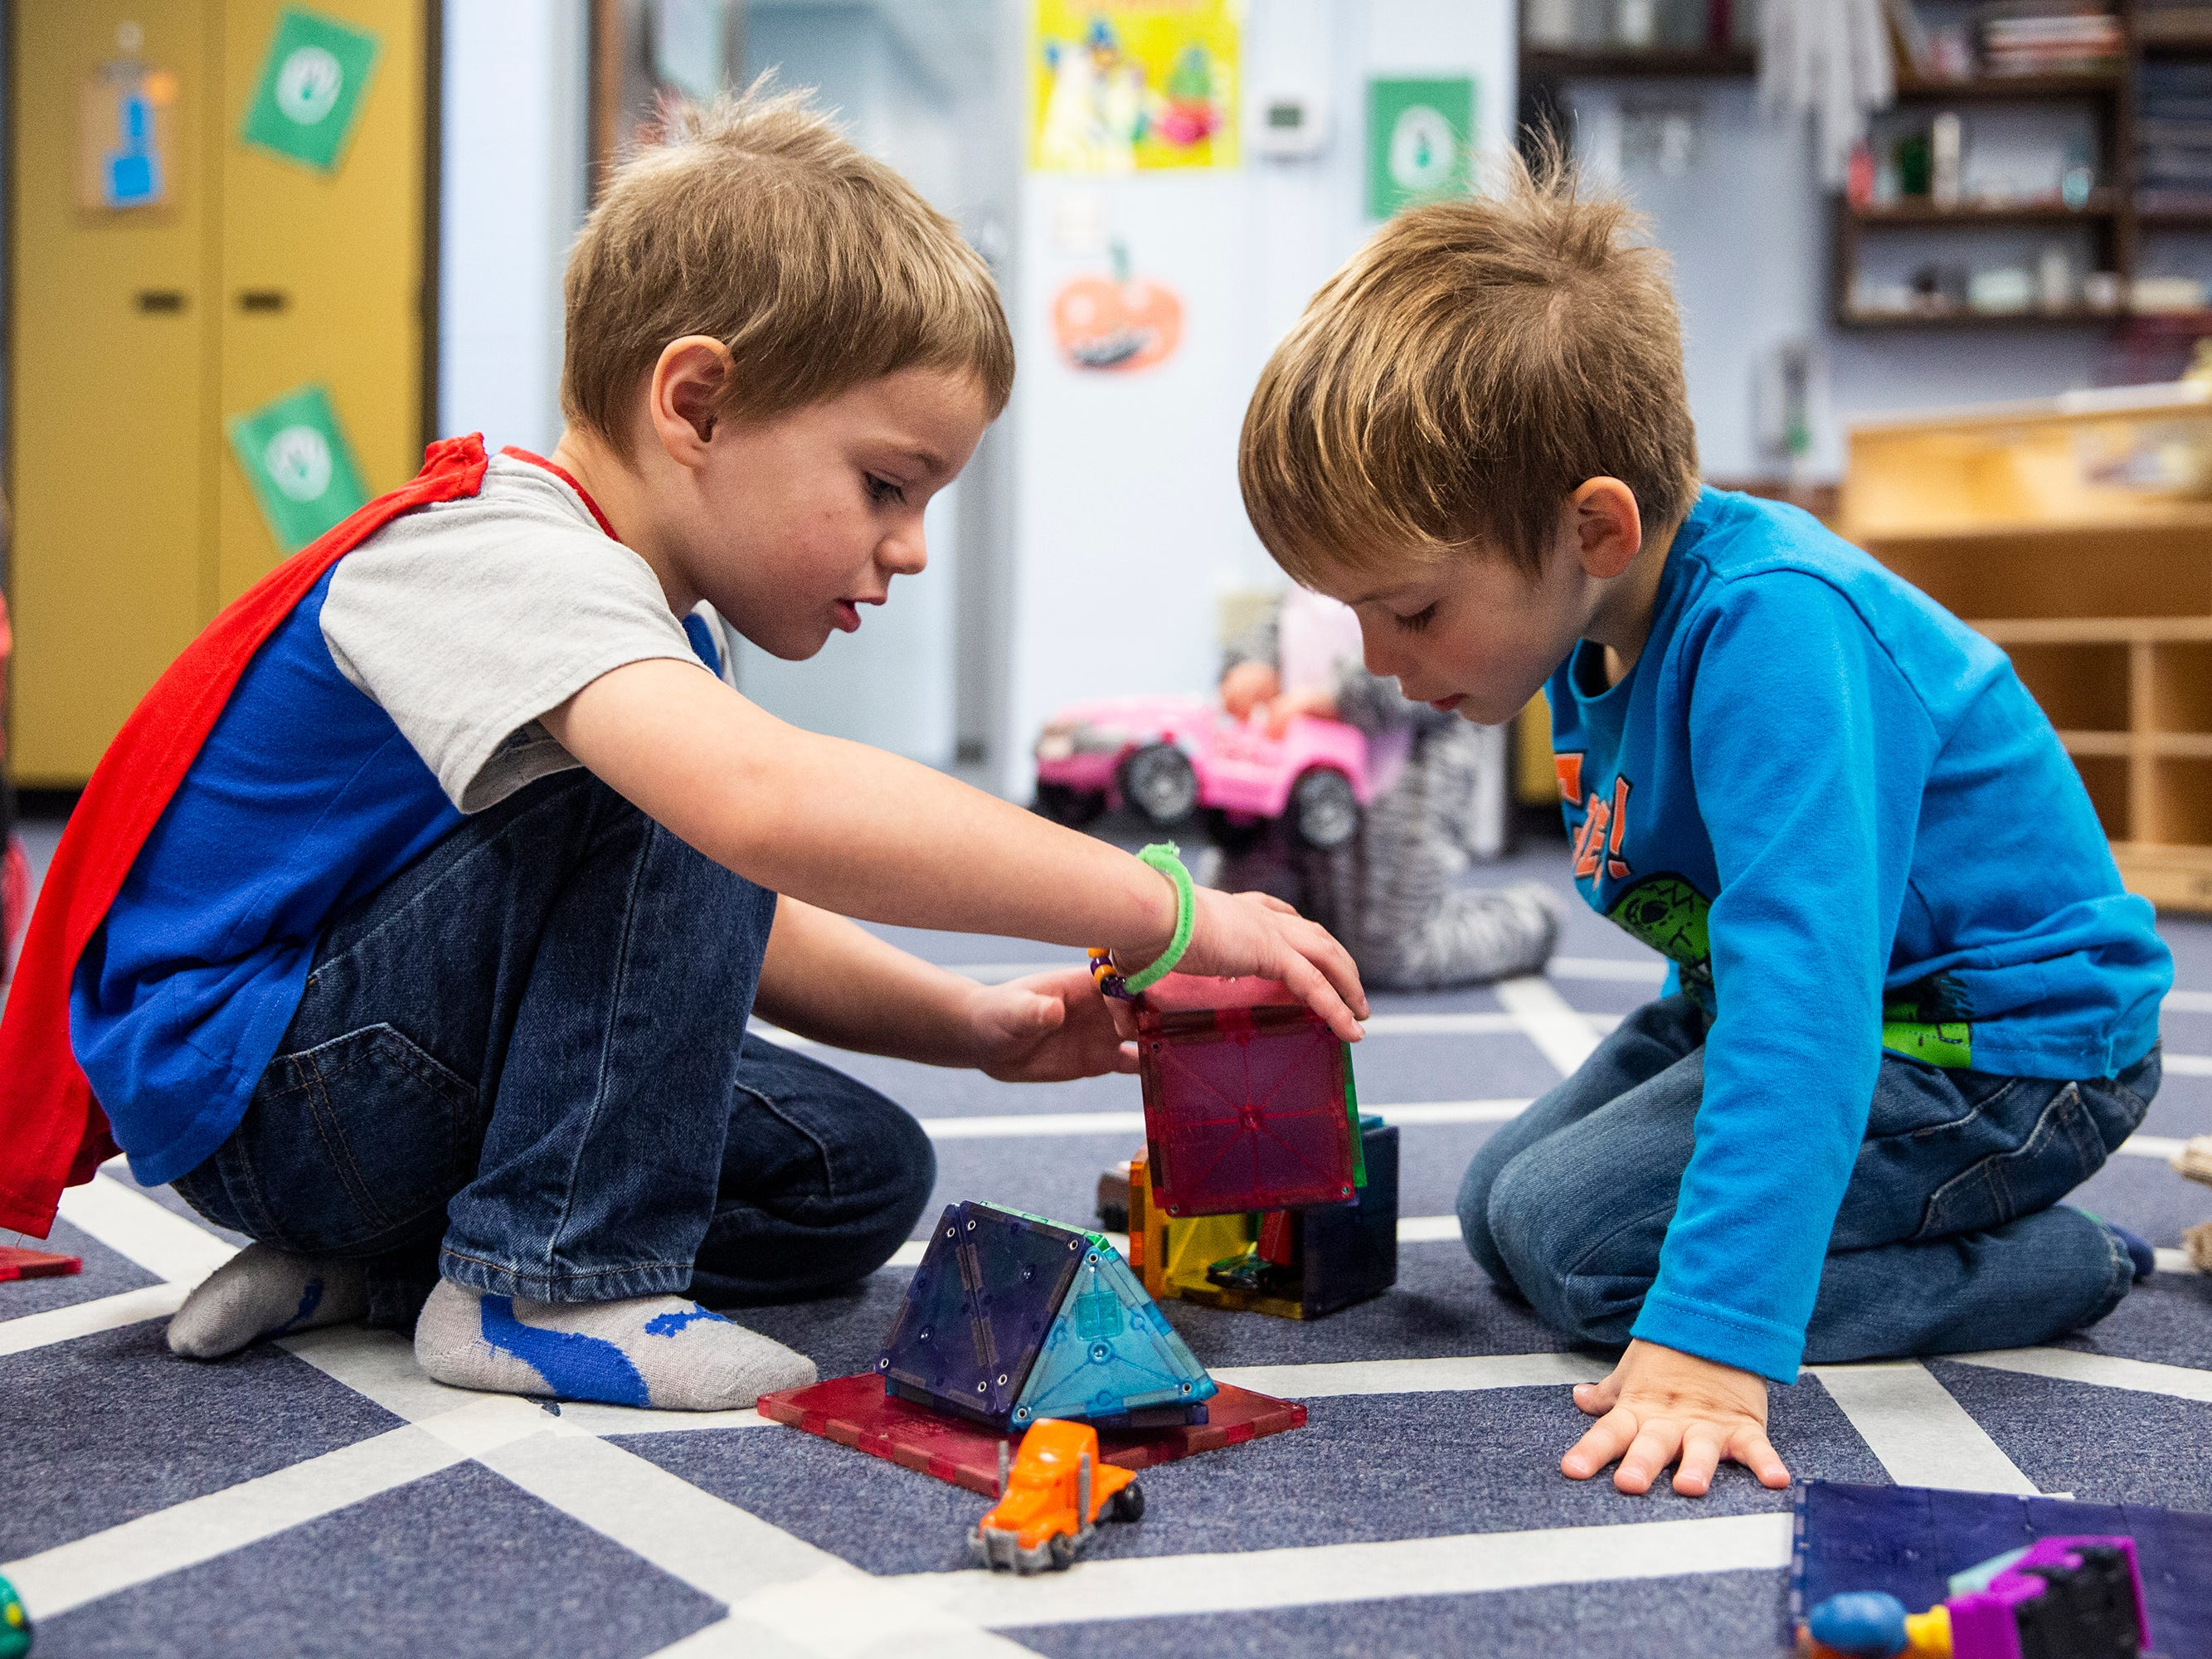 Iowa's child care deserts: These maps show where Iowans struggle to find day care